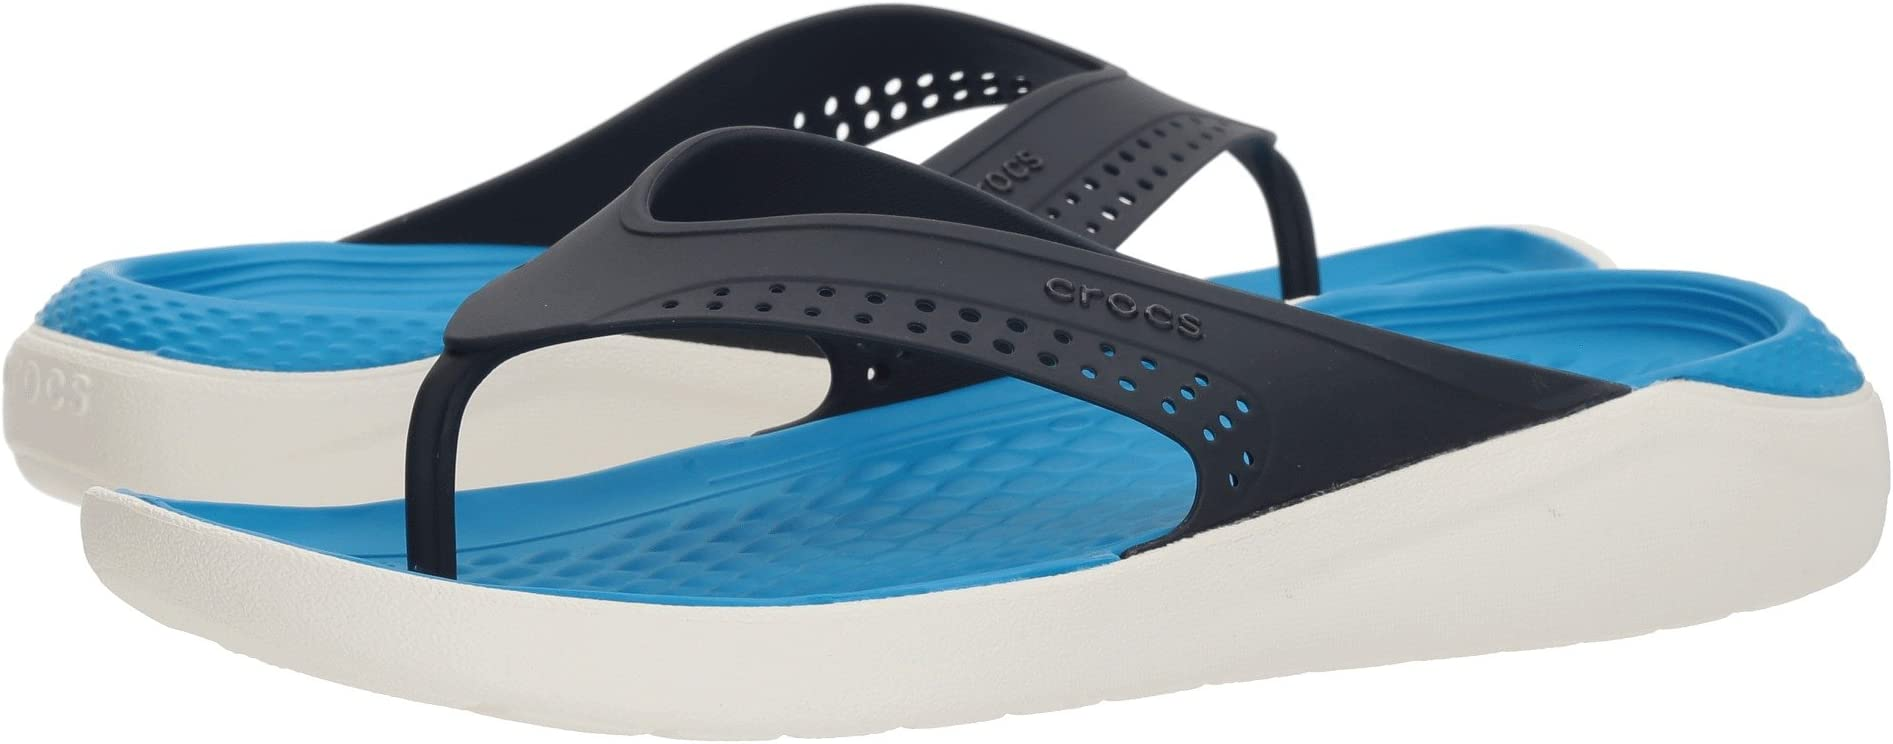 d5c66b350a9bb TC-2-Sandals-Crocs-2019-7-01